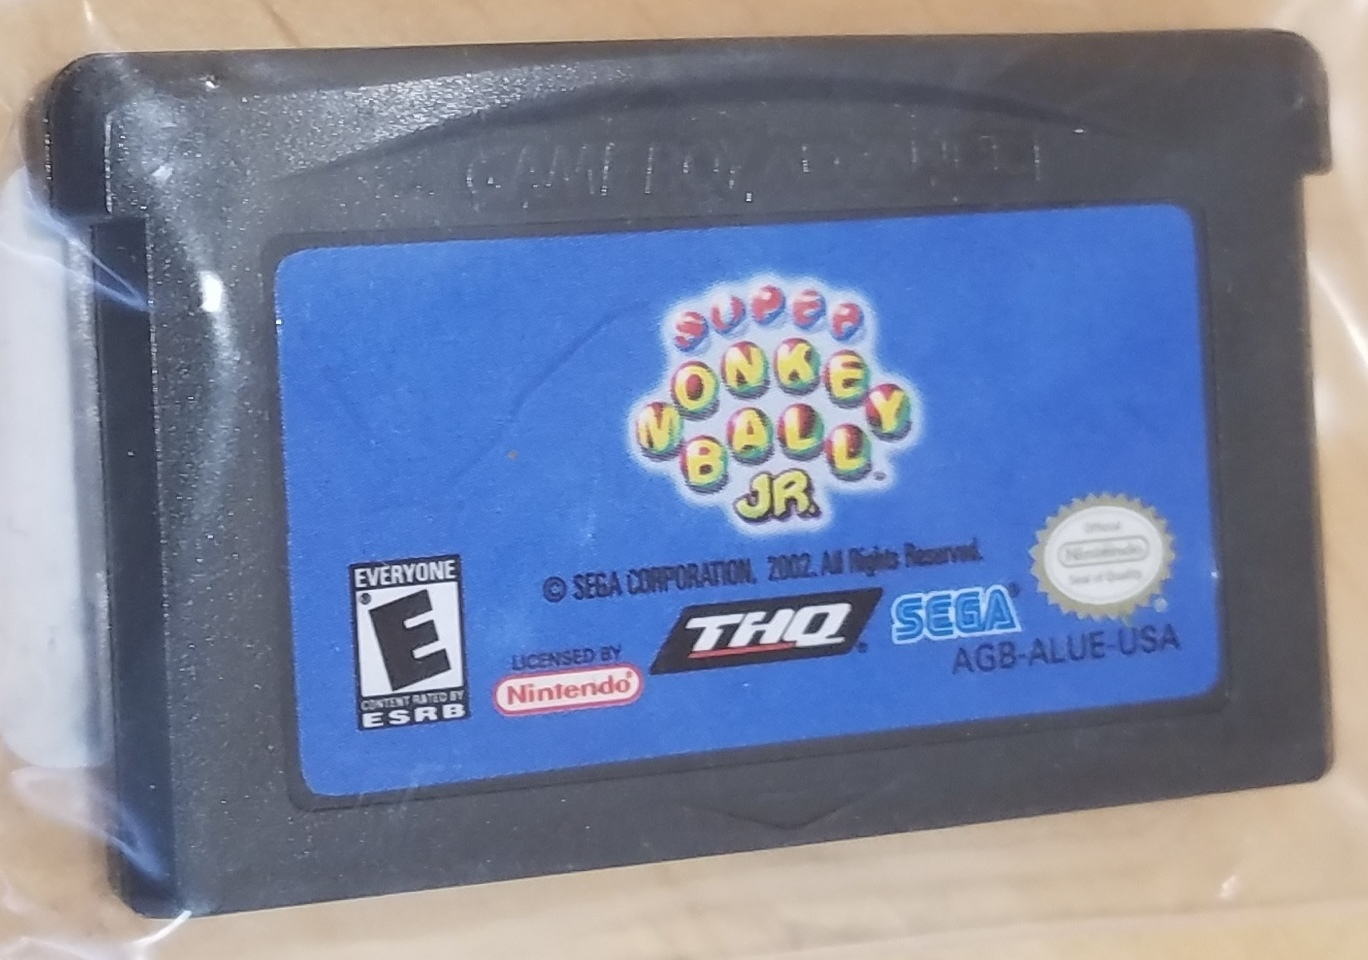 GAMEBOY ADVANCE GAME Monkey Ball Jr